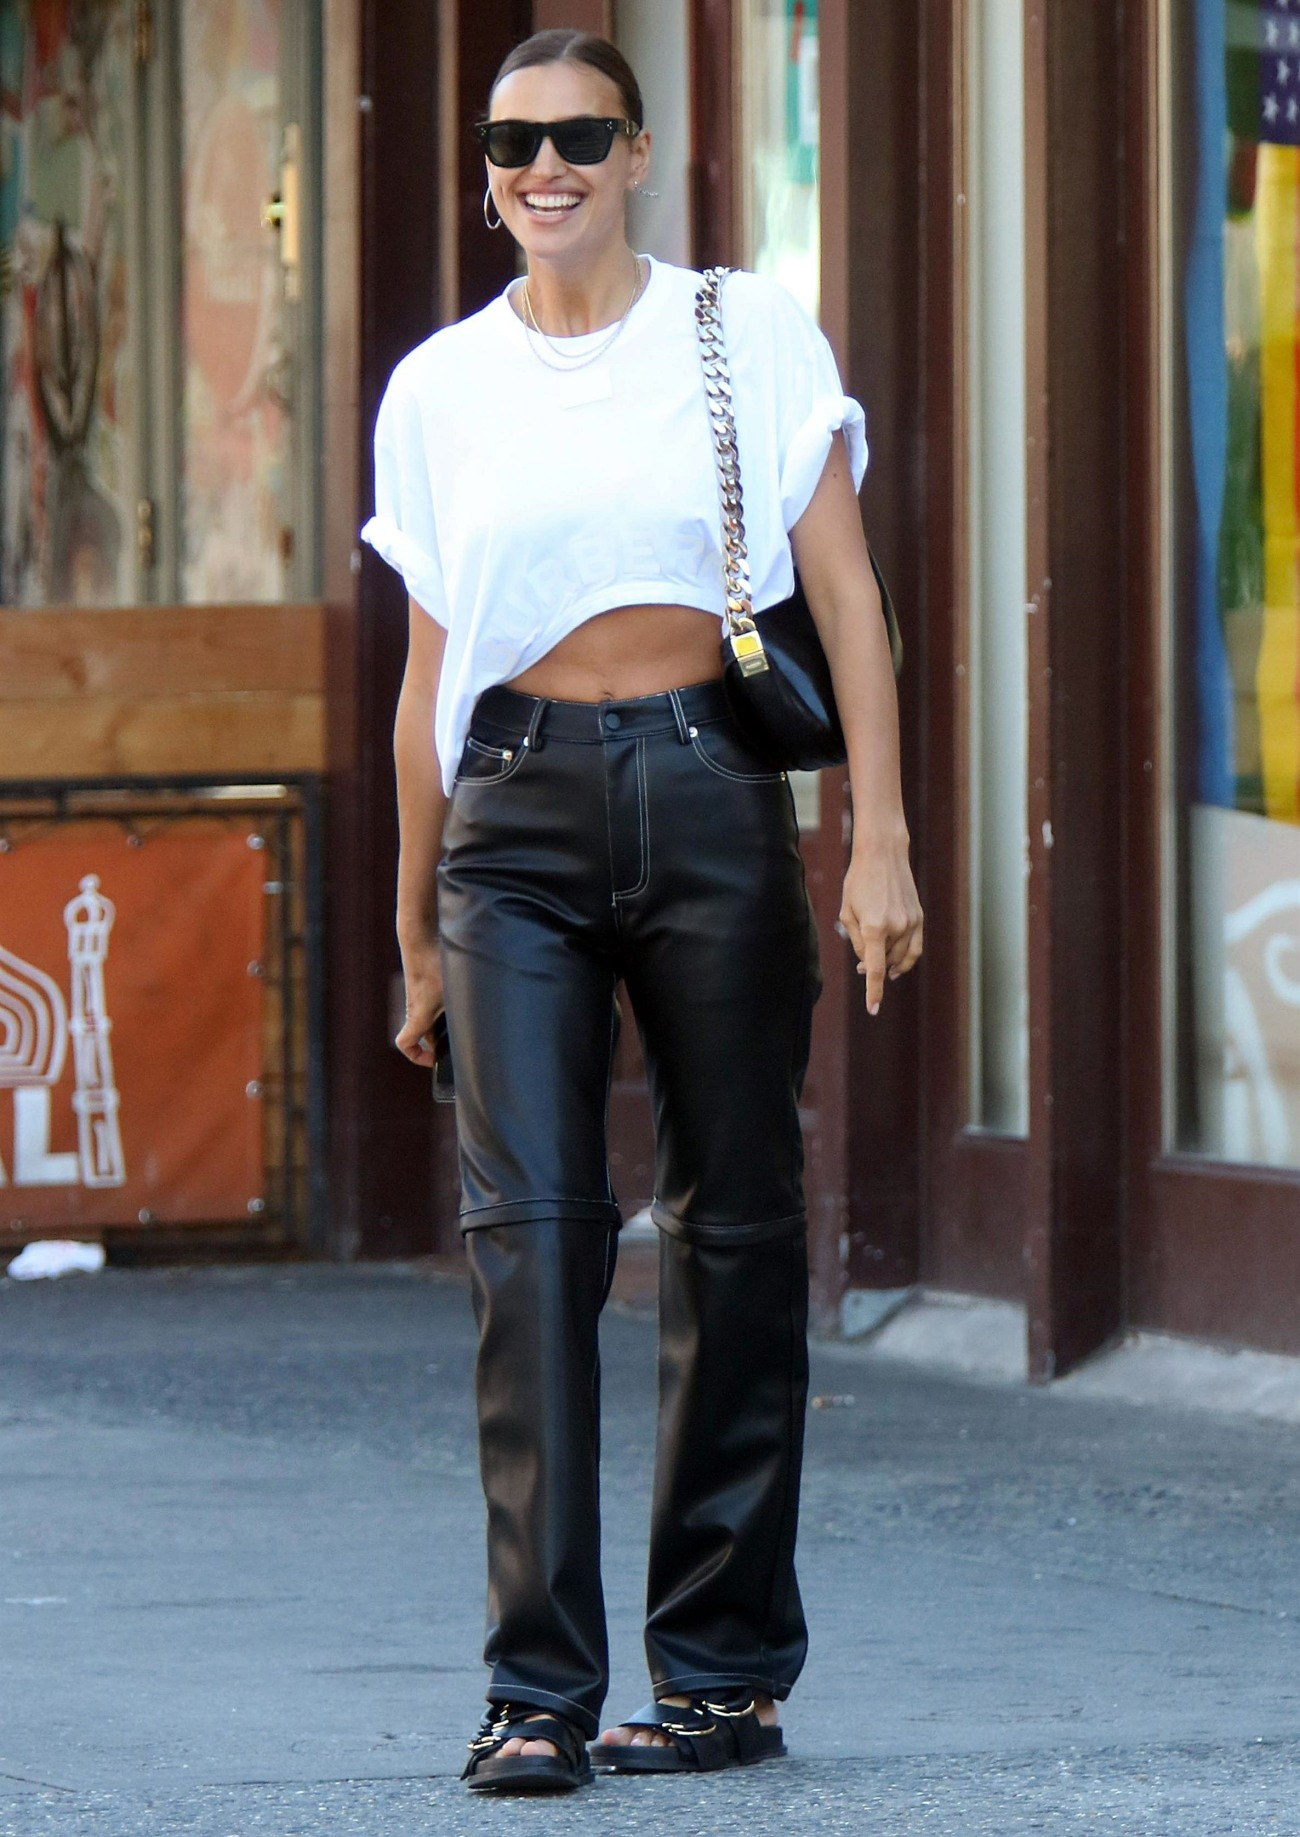 Irina Shayk serves hot model waist and bright smile while out in NYC